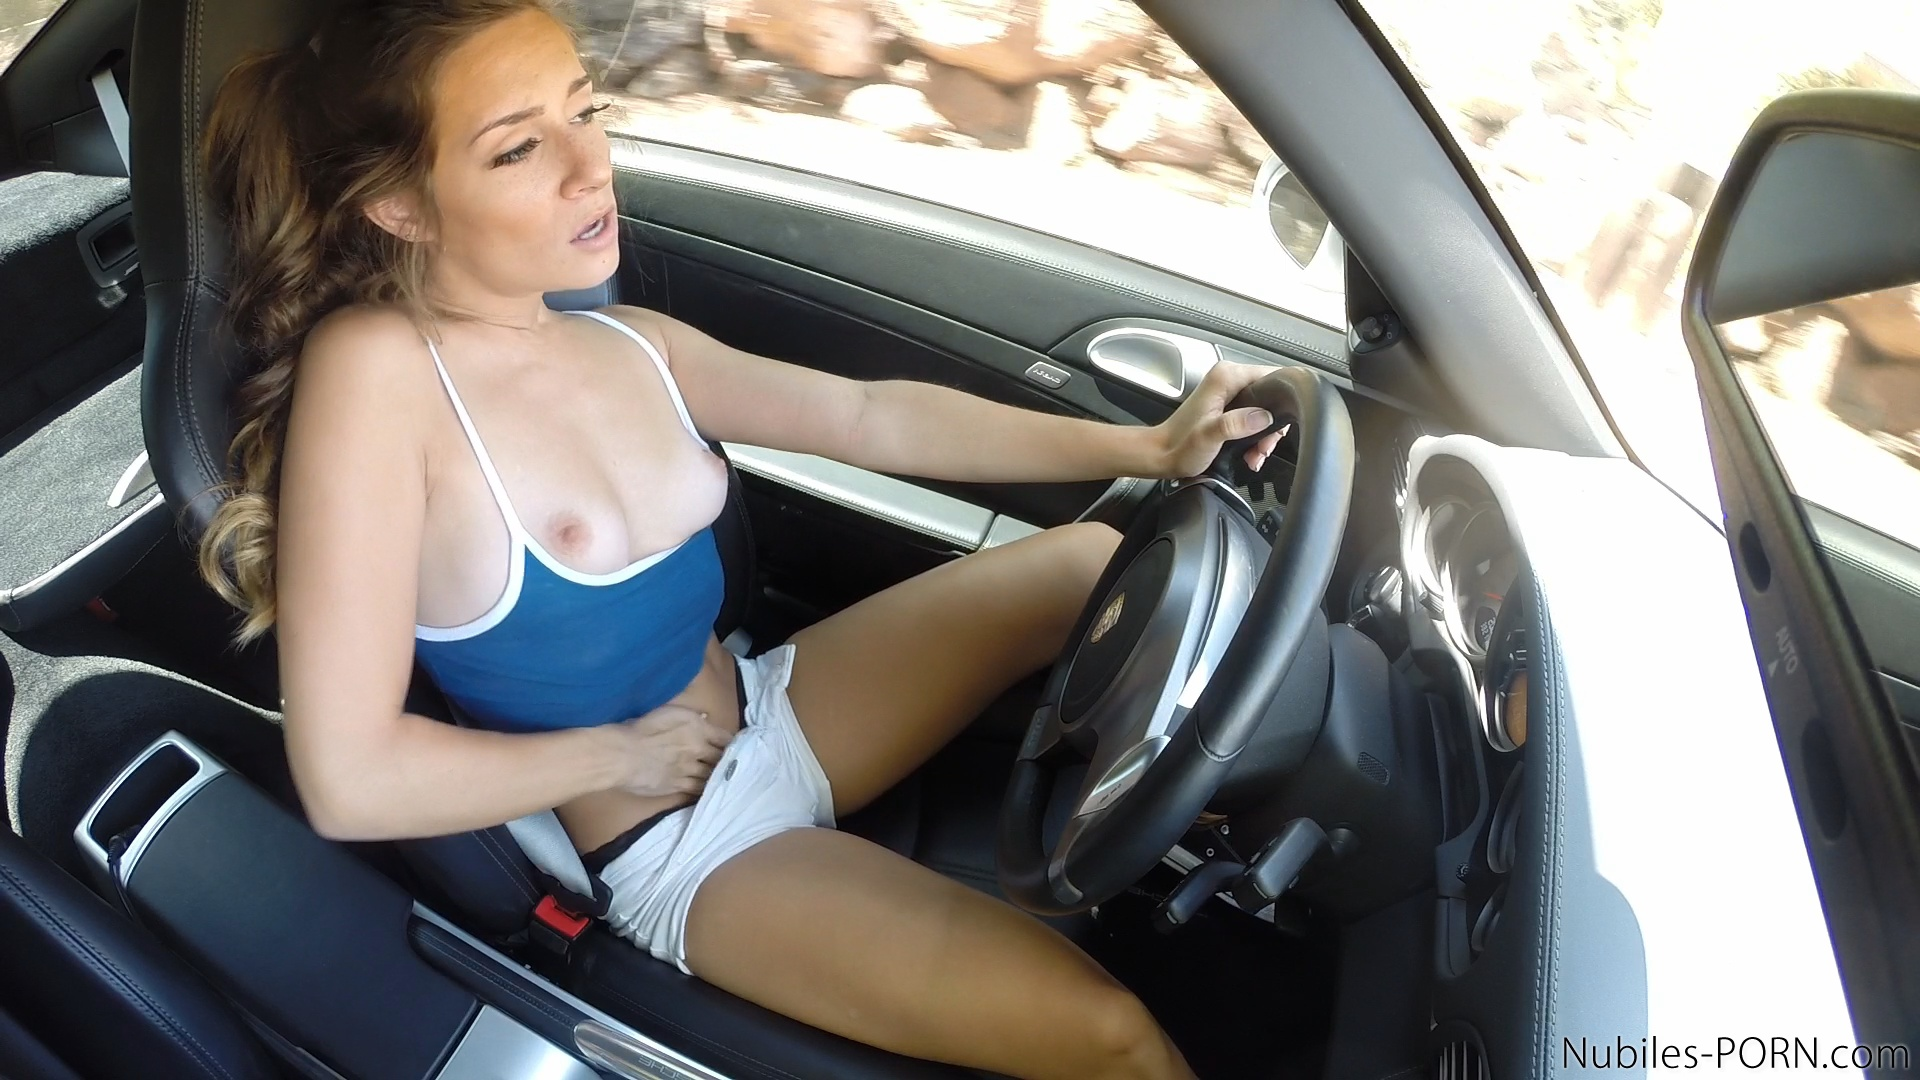 Nude handjob in car agree